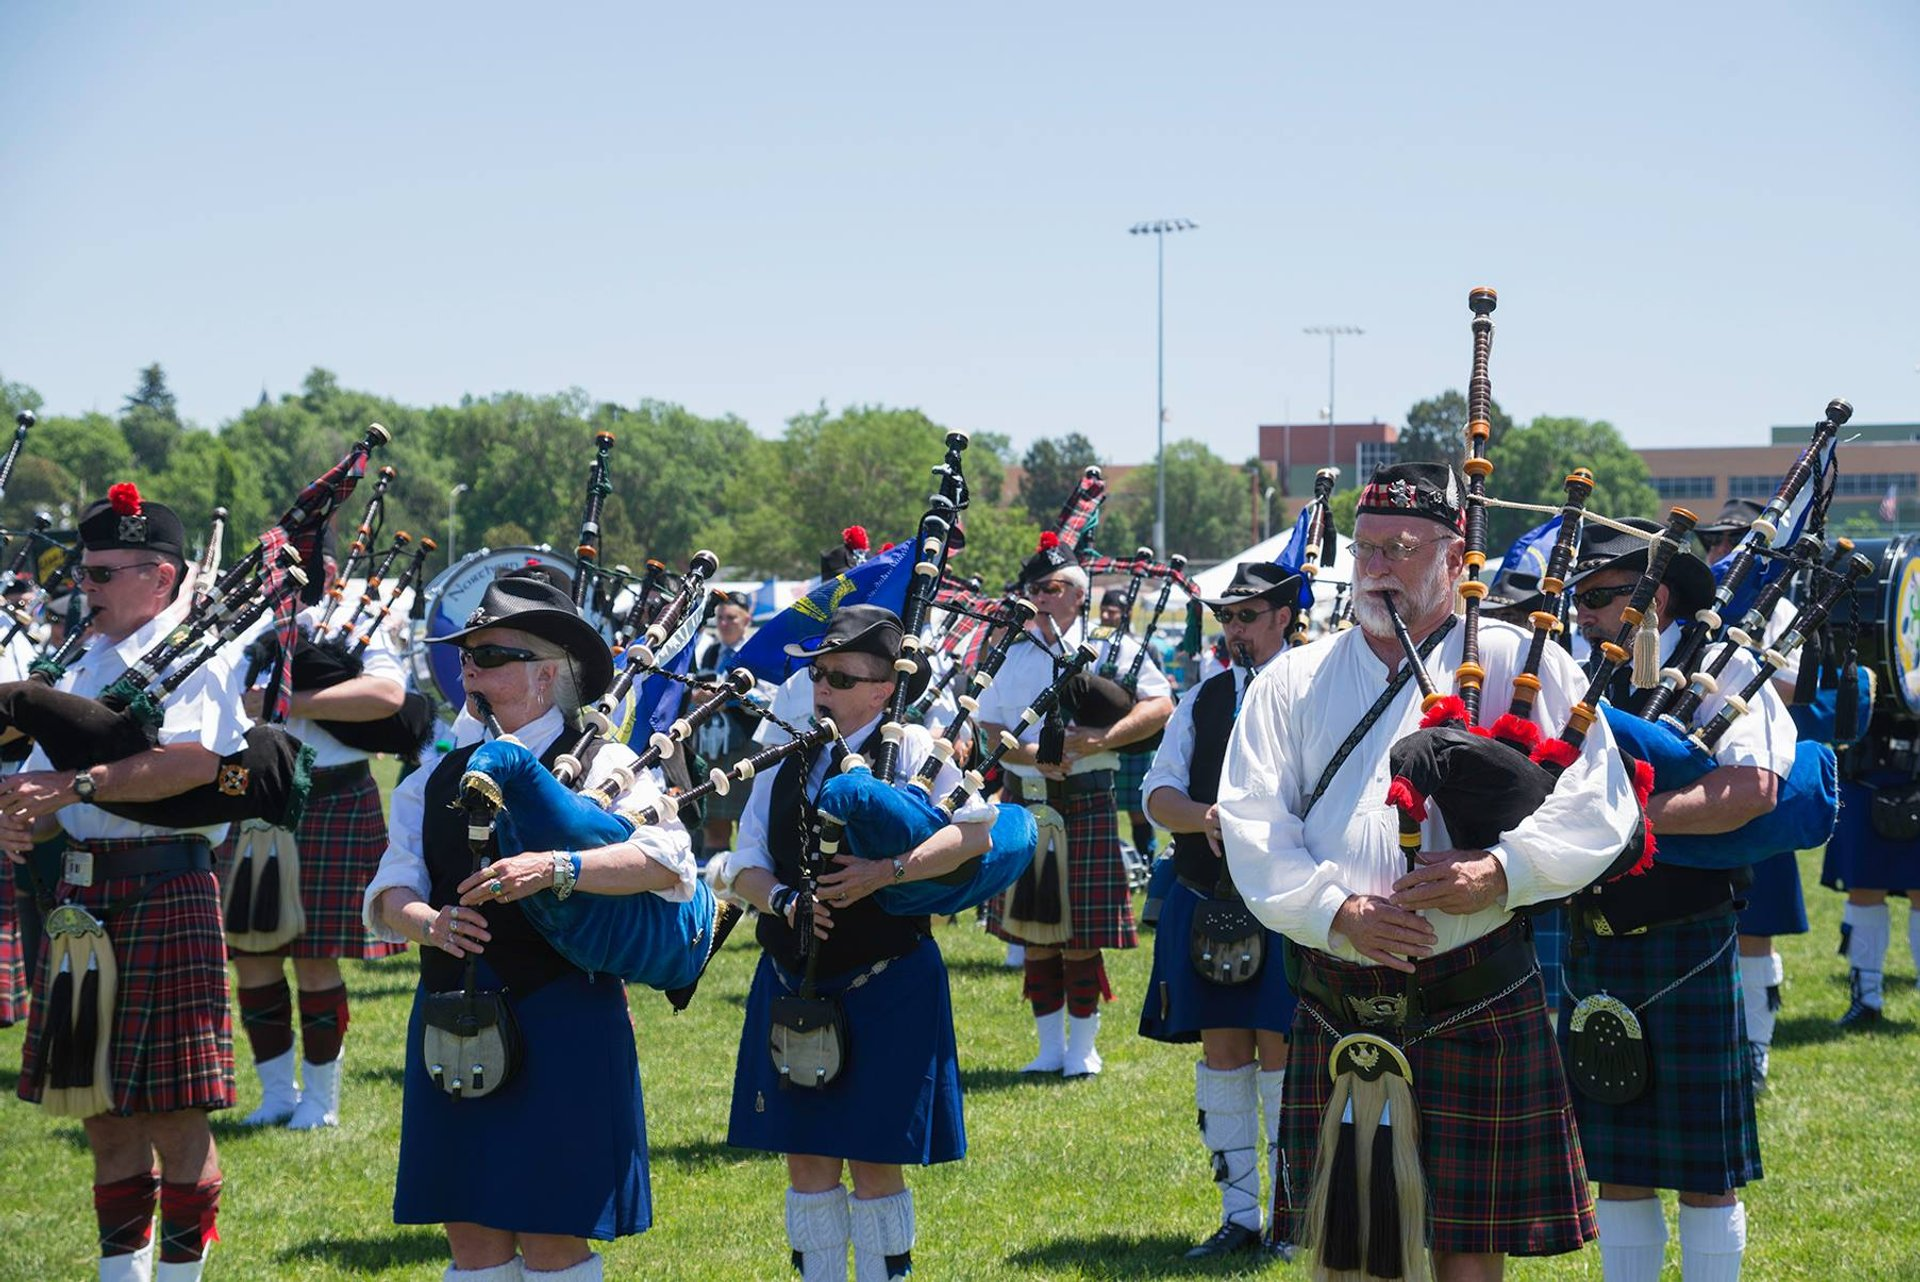 Pikes Peak Celtic Festival in Colorado 2020 - Best Time